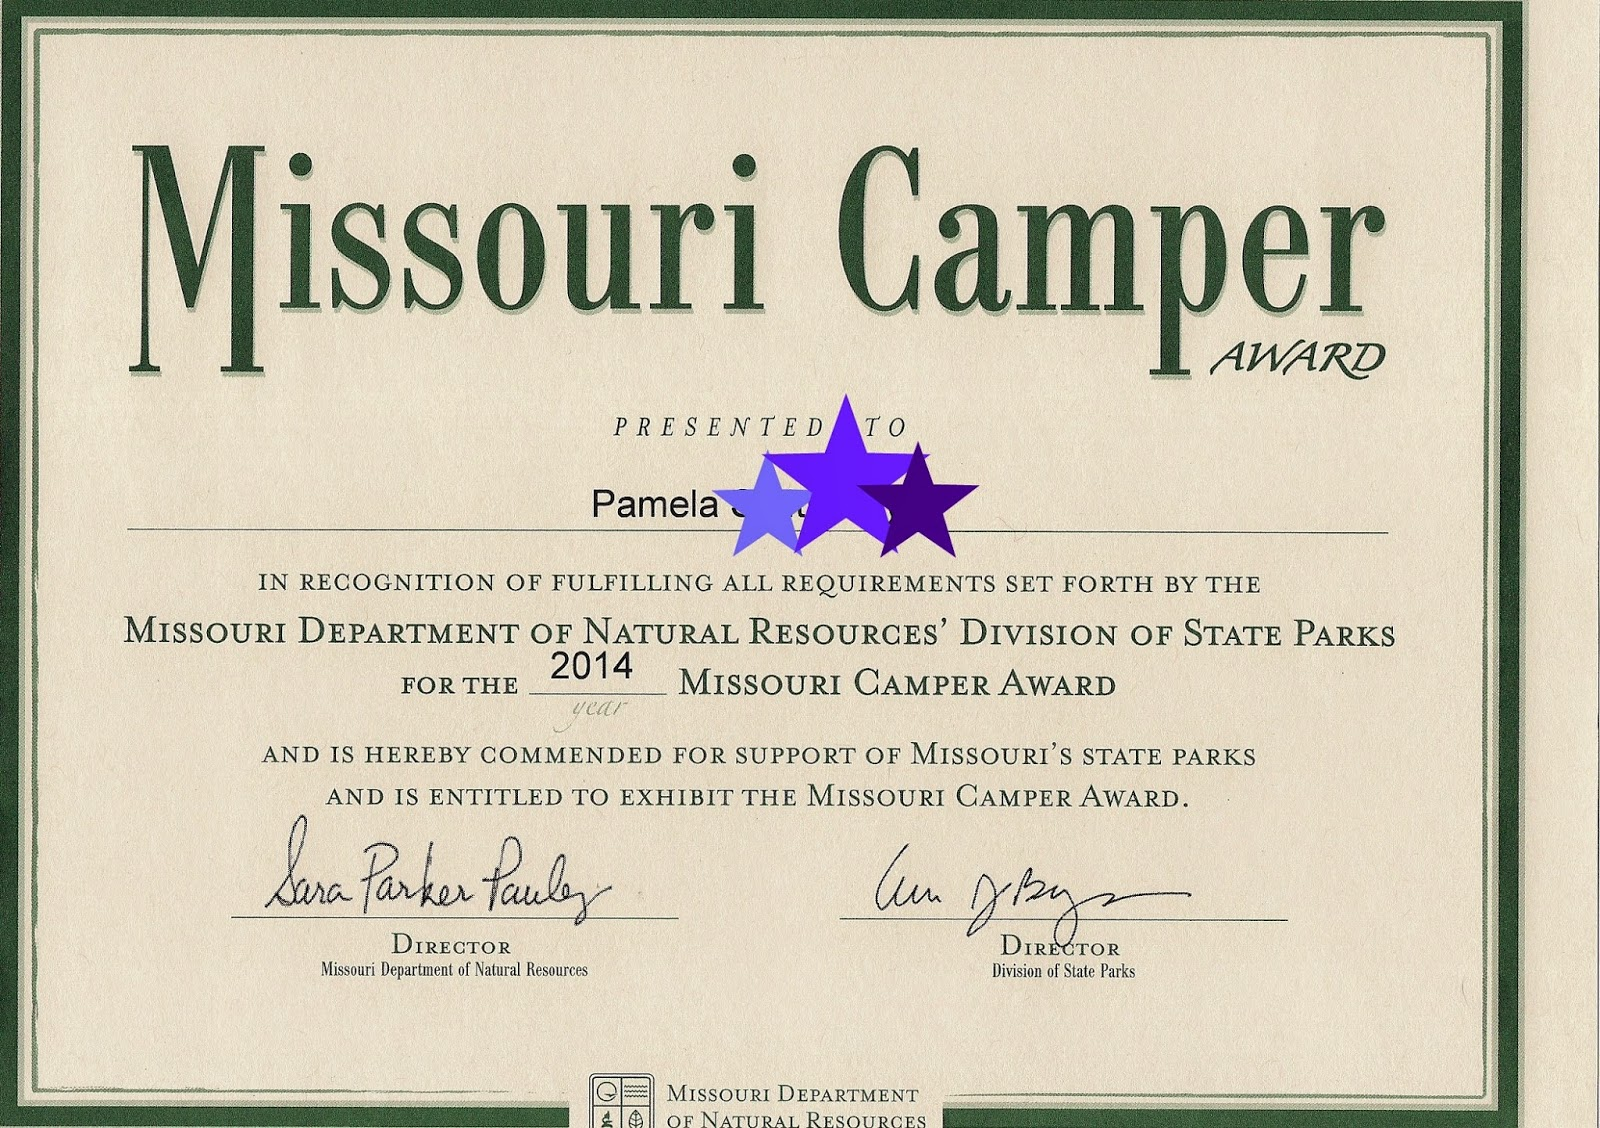 Employee Award Certificate Templates Free Entry Level Customer Best Employee  Award Certificate Templates Gallery Templates Camperaward1  Free Employee Of The Month Certificate Template